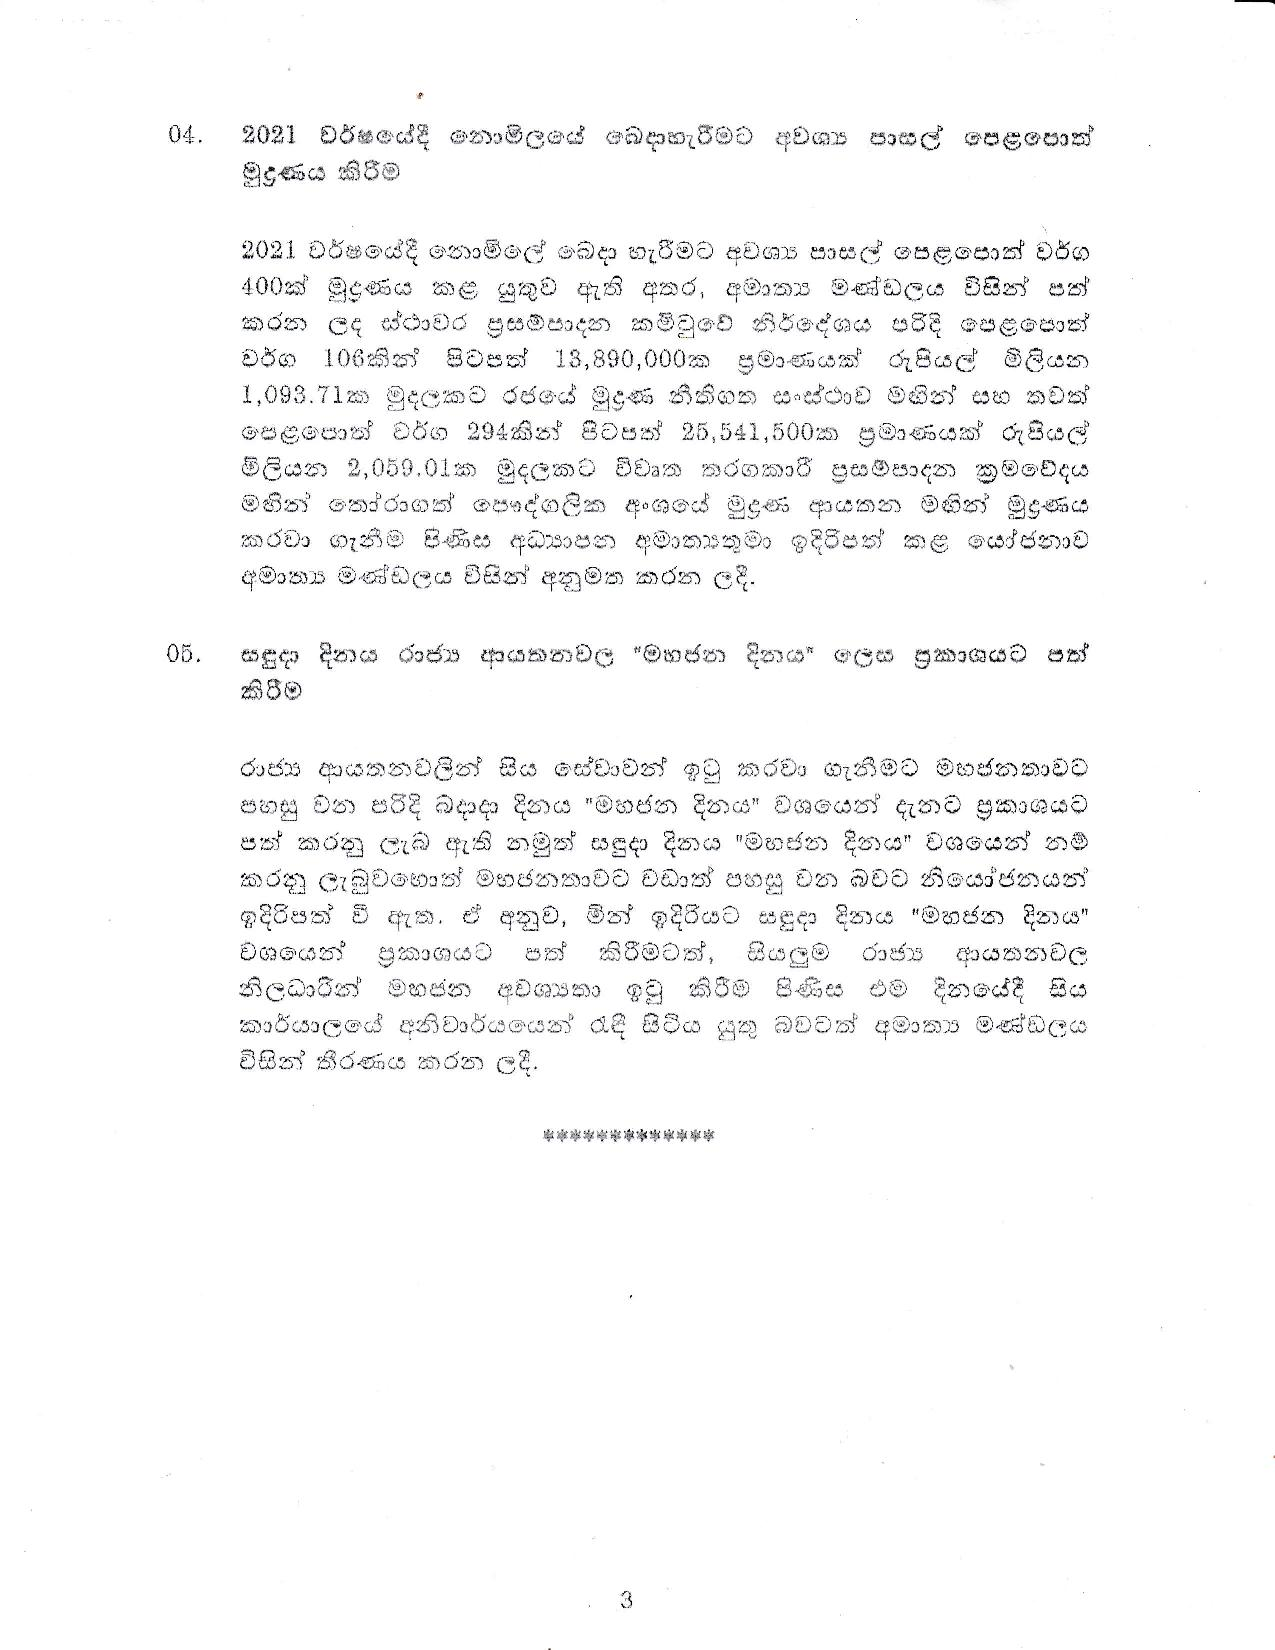 Cabinet Decision on 09.09.2020 page 003